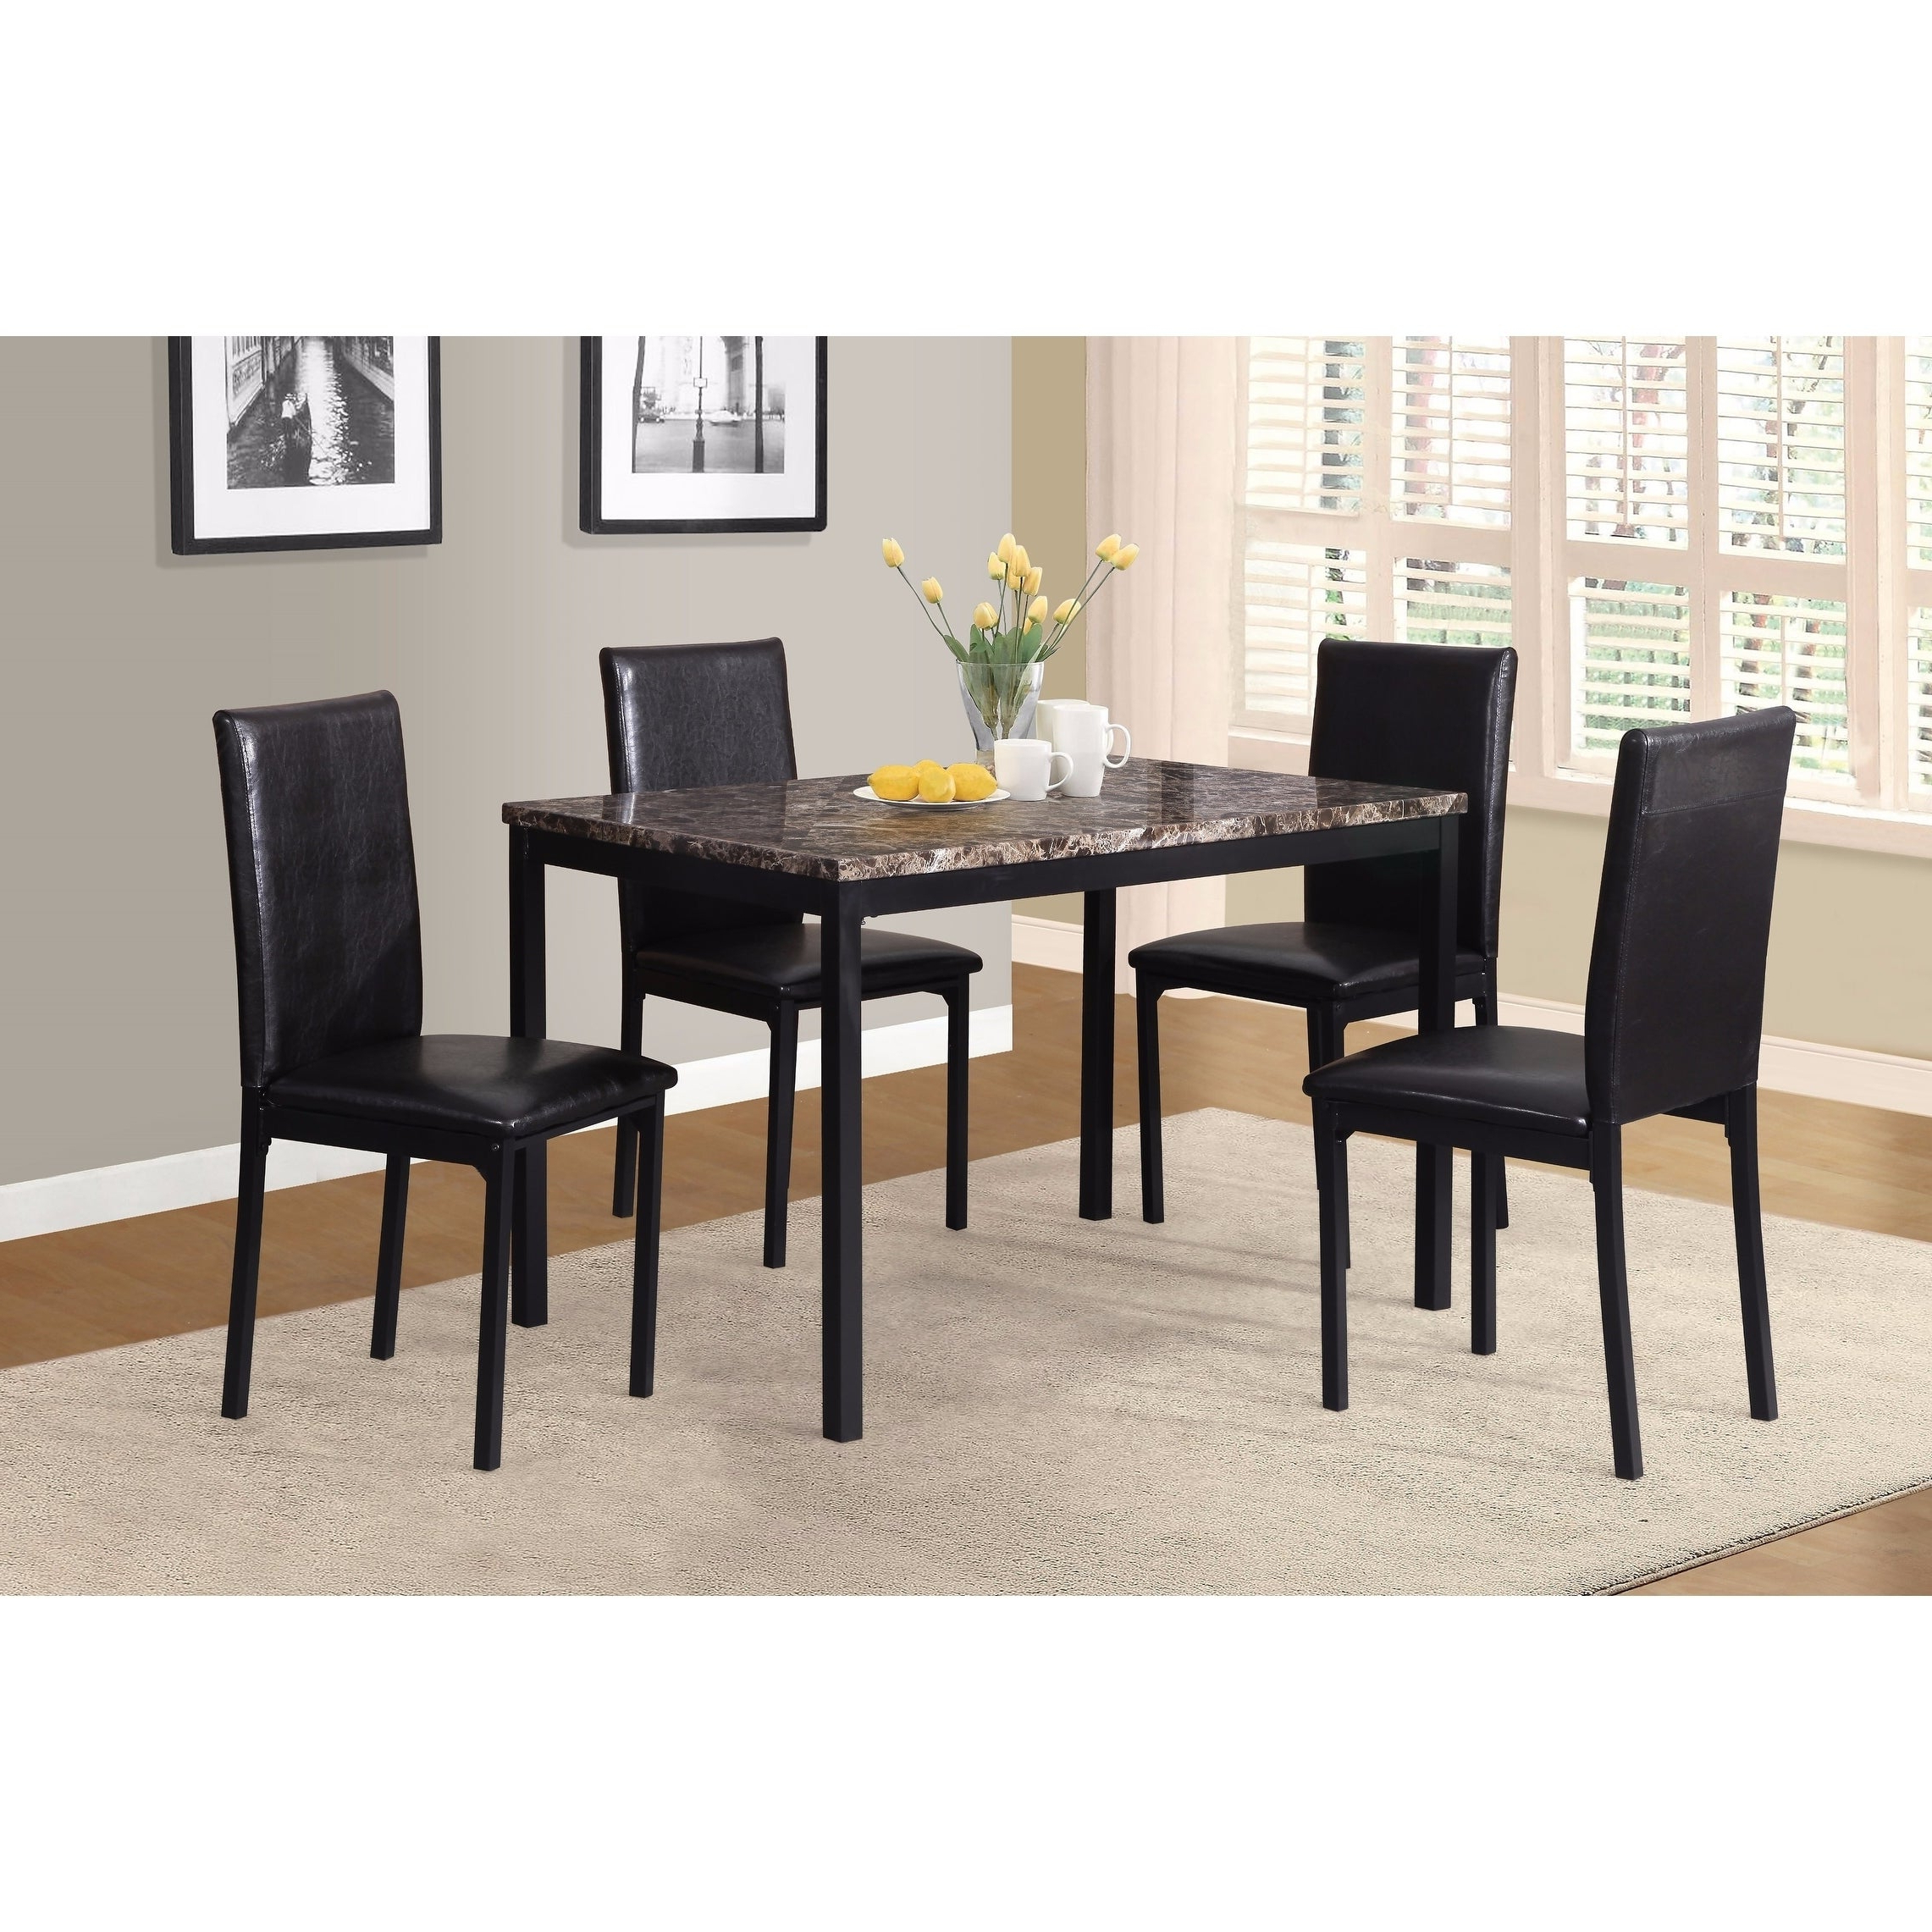 Noyes 5 Piece Dining Sets For Fashionable Shop Noyes Metal Dining Table With Laminated Faux Marble Top – Black (View 3 of 25)